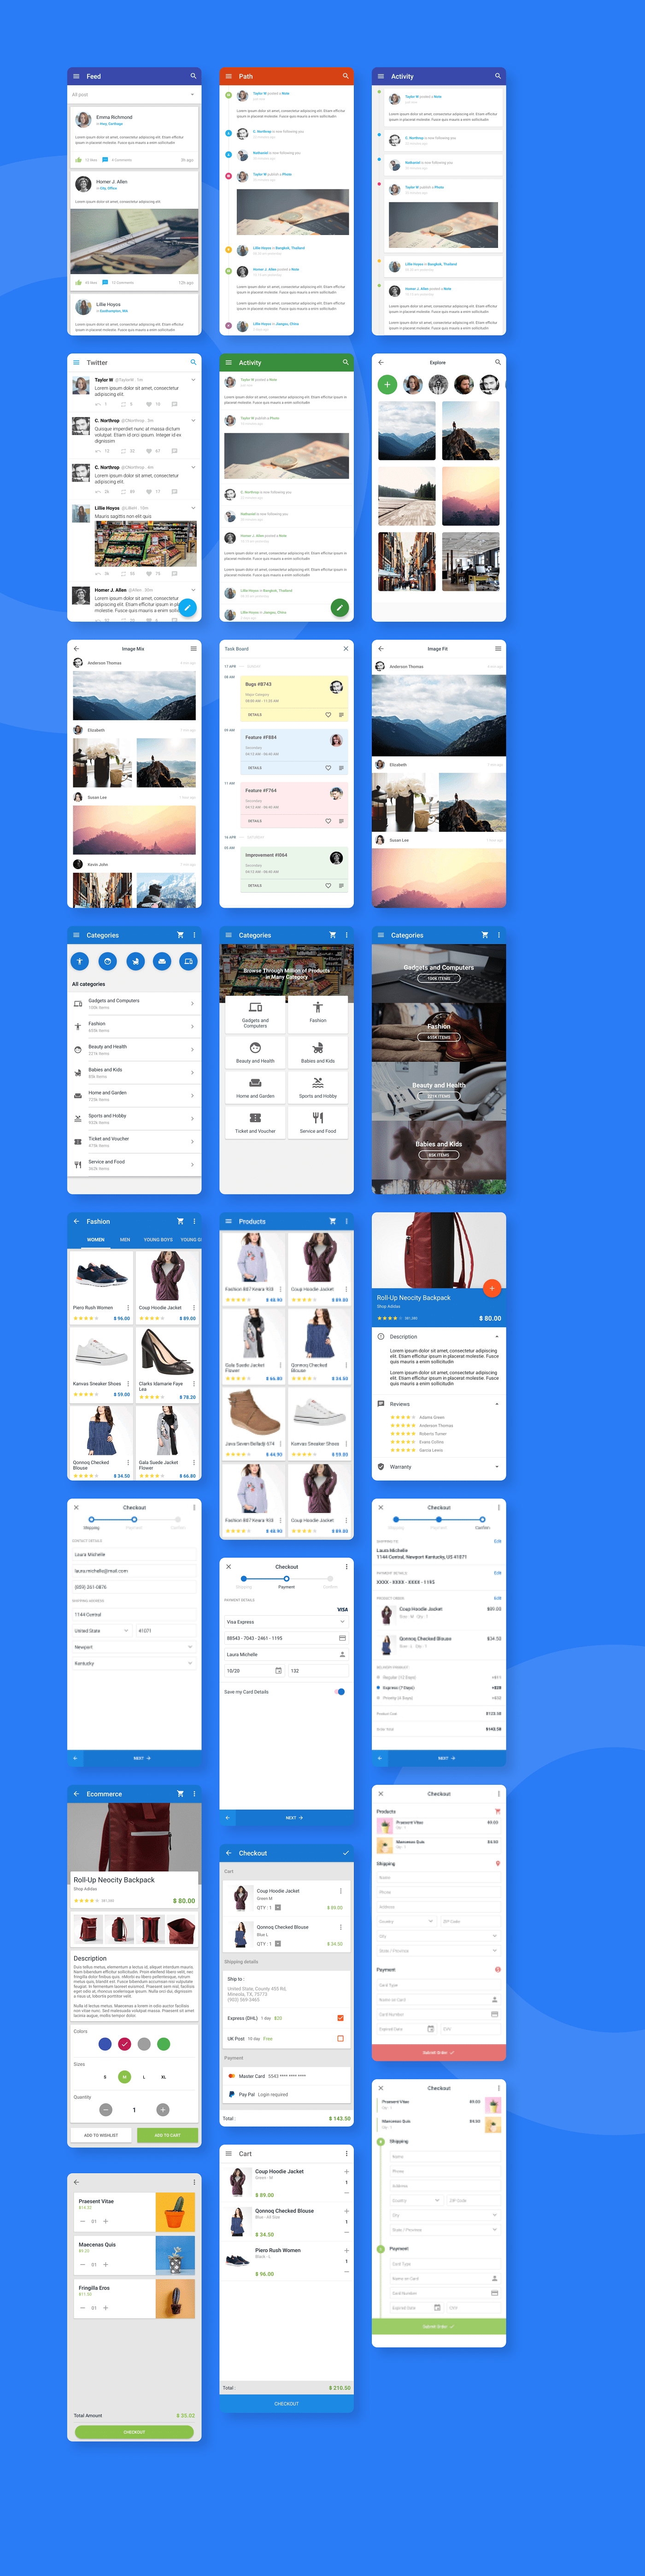 MaterialX - Android Material Design UI Components 2.7 - 28